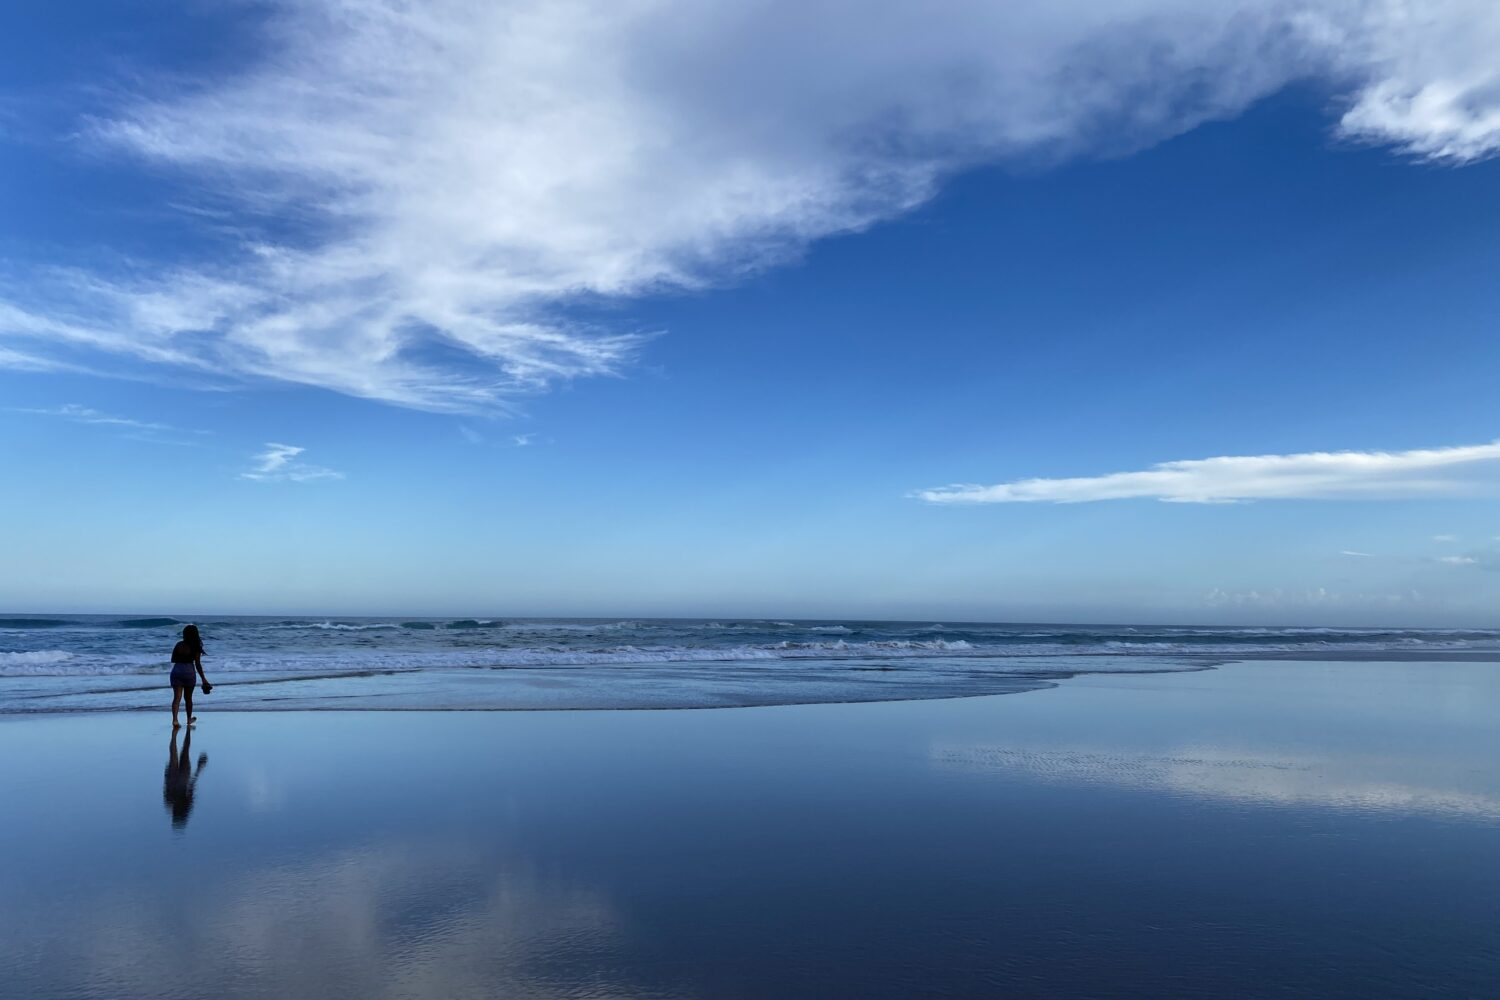 single person on beach with blue sky